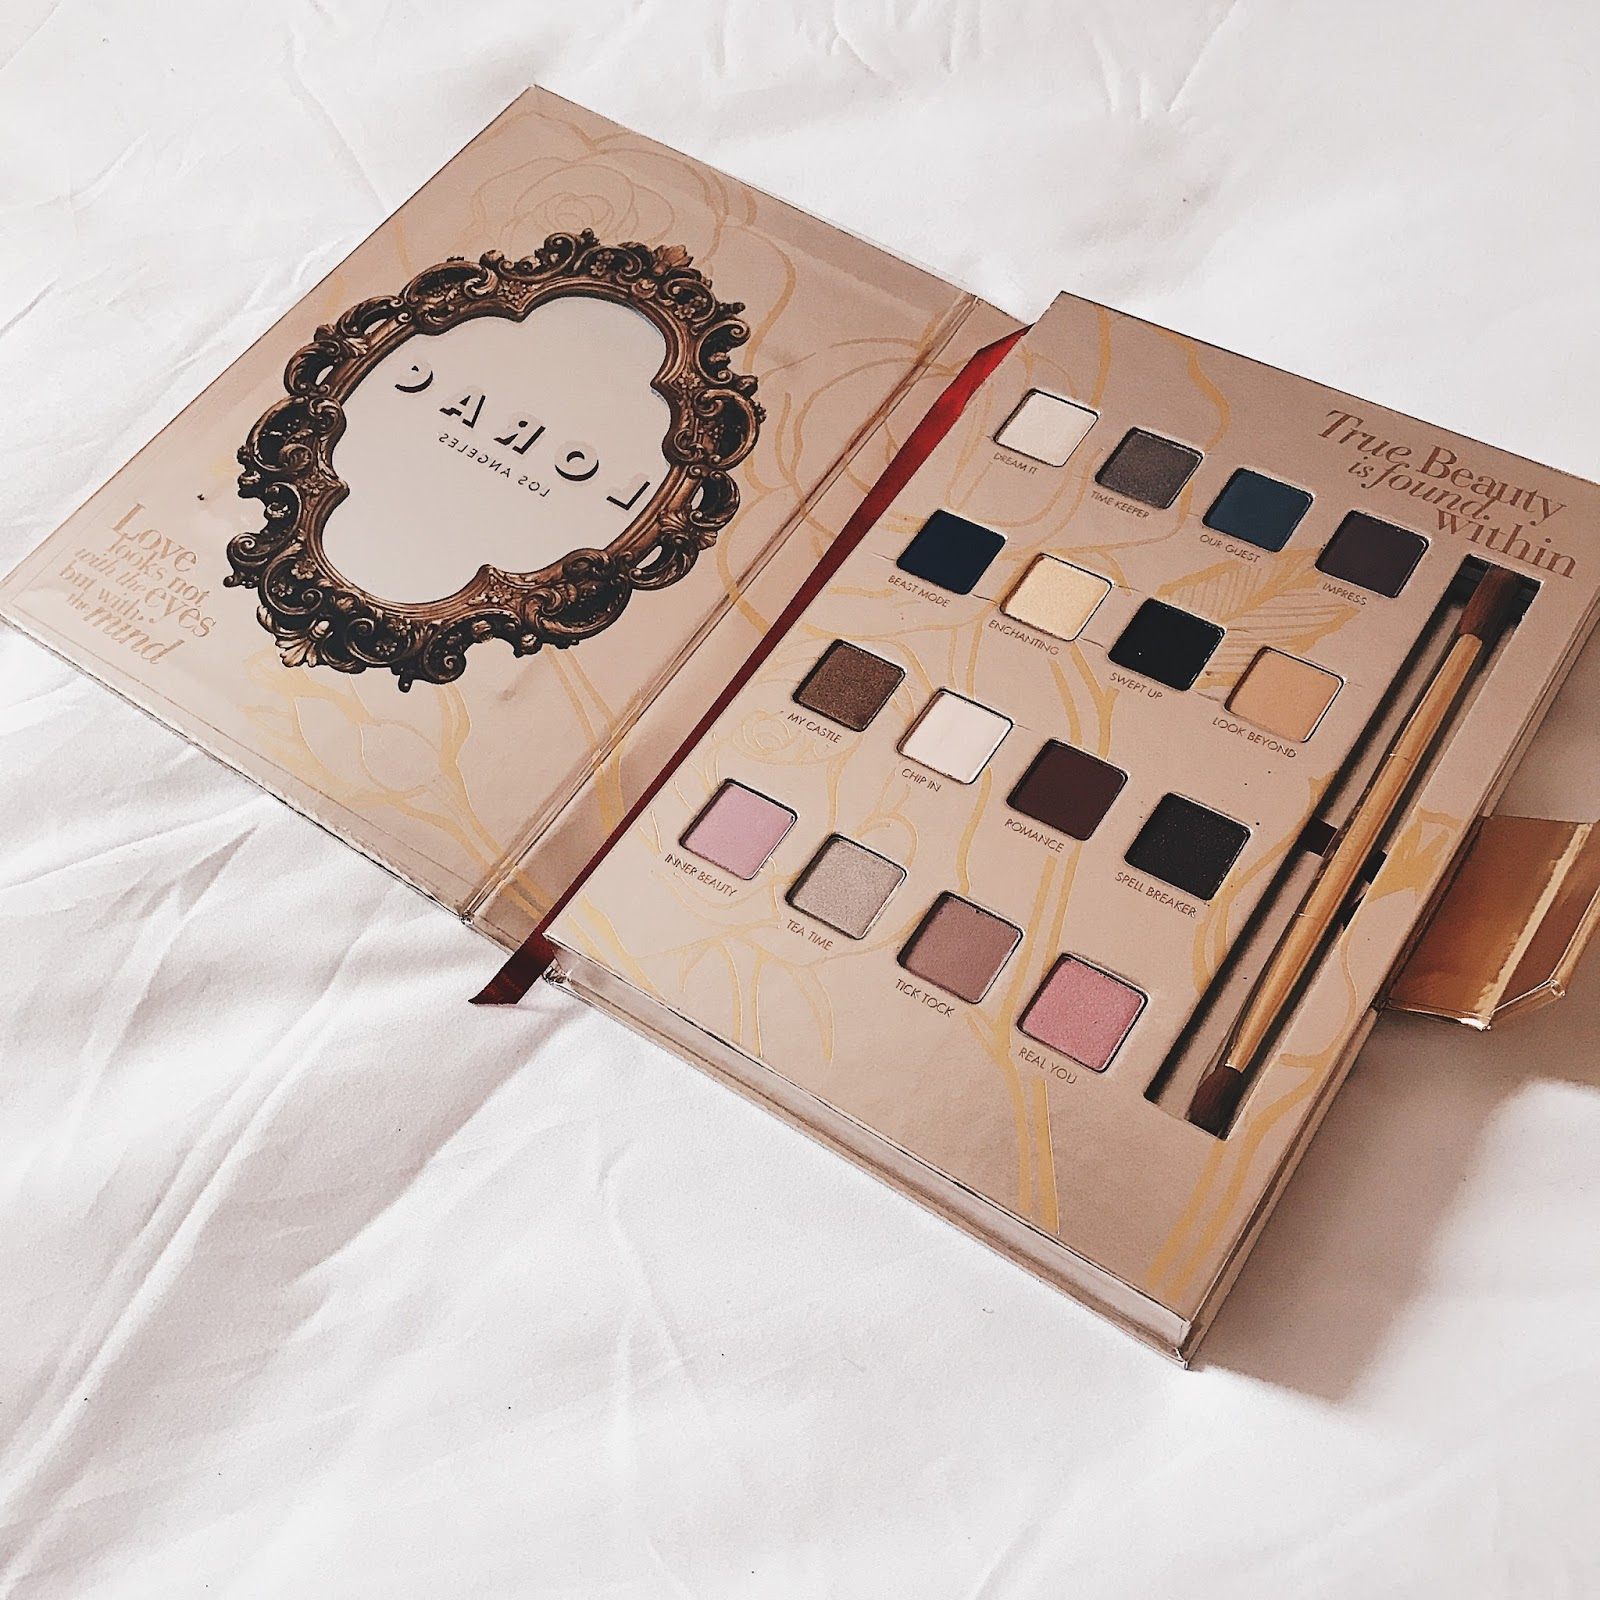 how to create a proposal template in word%0A Beauty And The Beast Palette By Lorac Review Write Out My Dreams IMG       Beauty And Beast Palette By Lorac Reviewhtml Beautiful How To Write Review